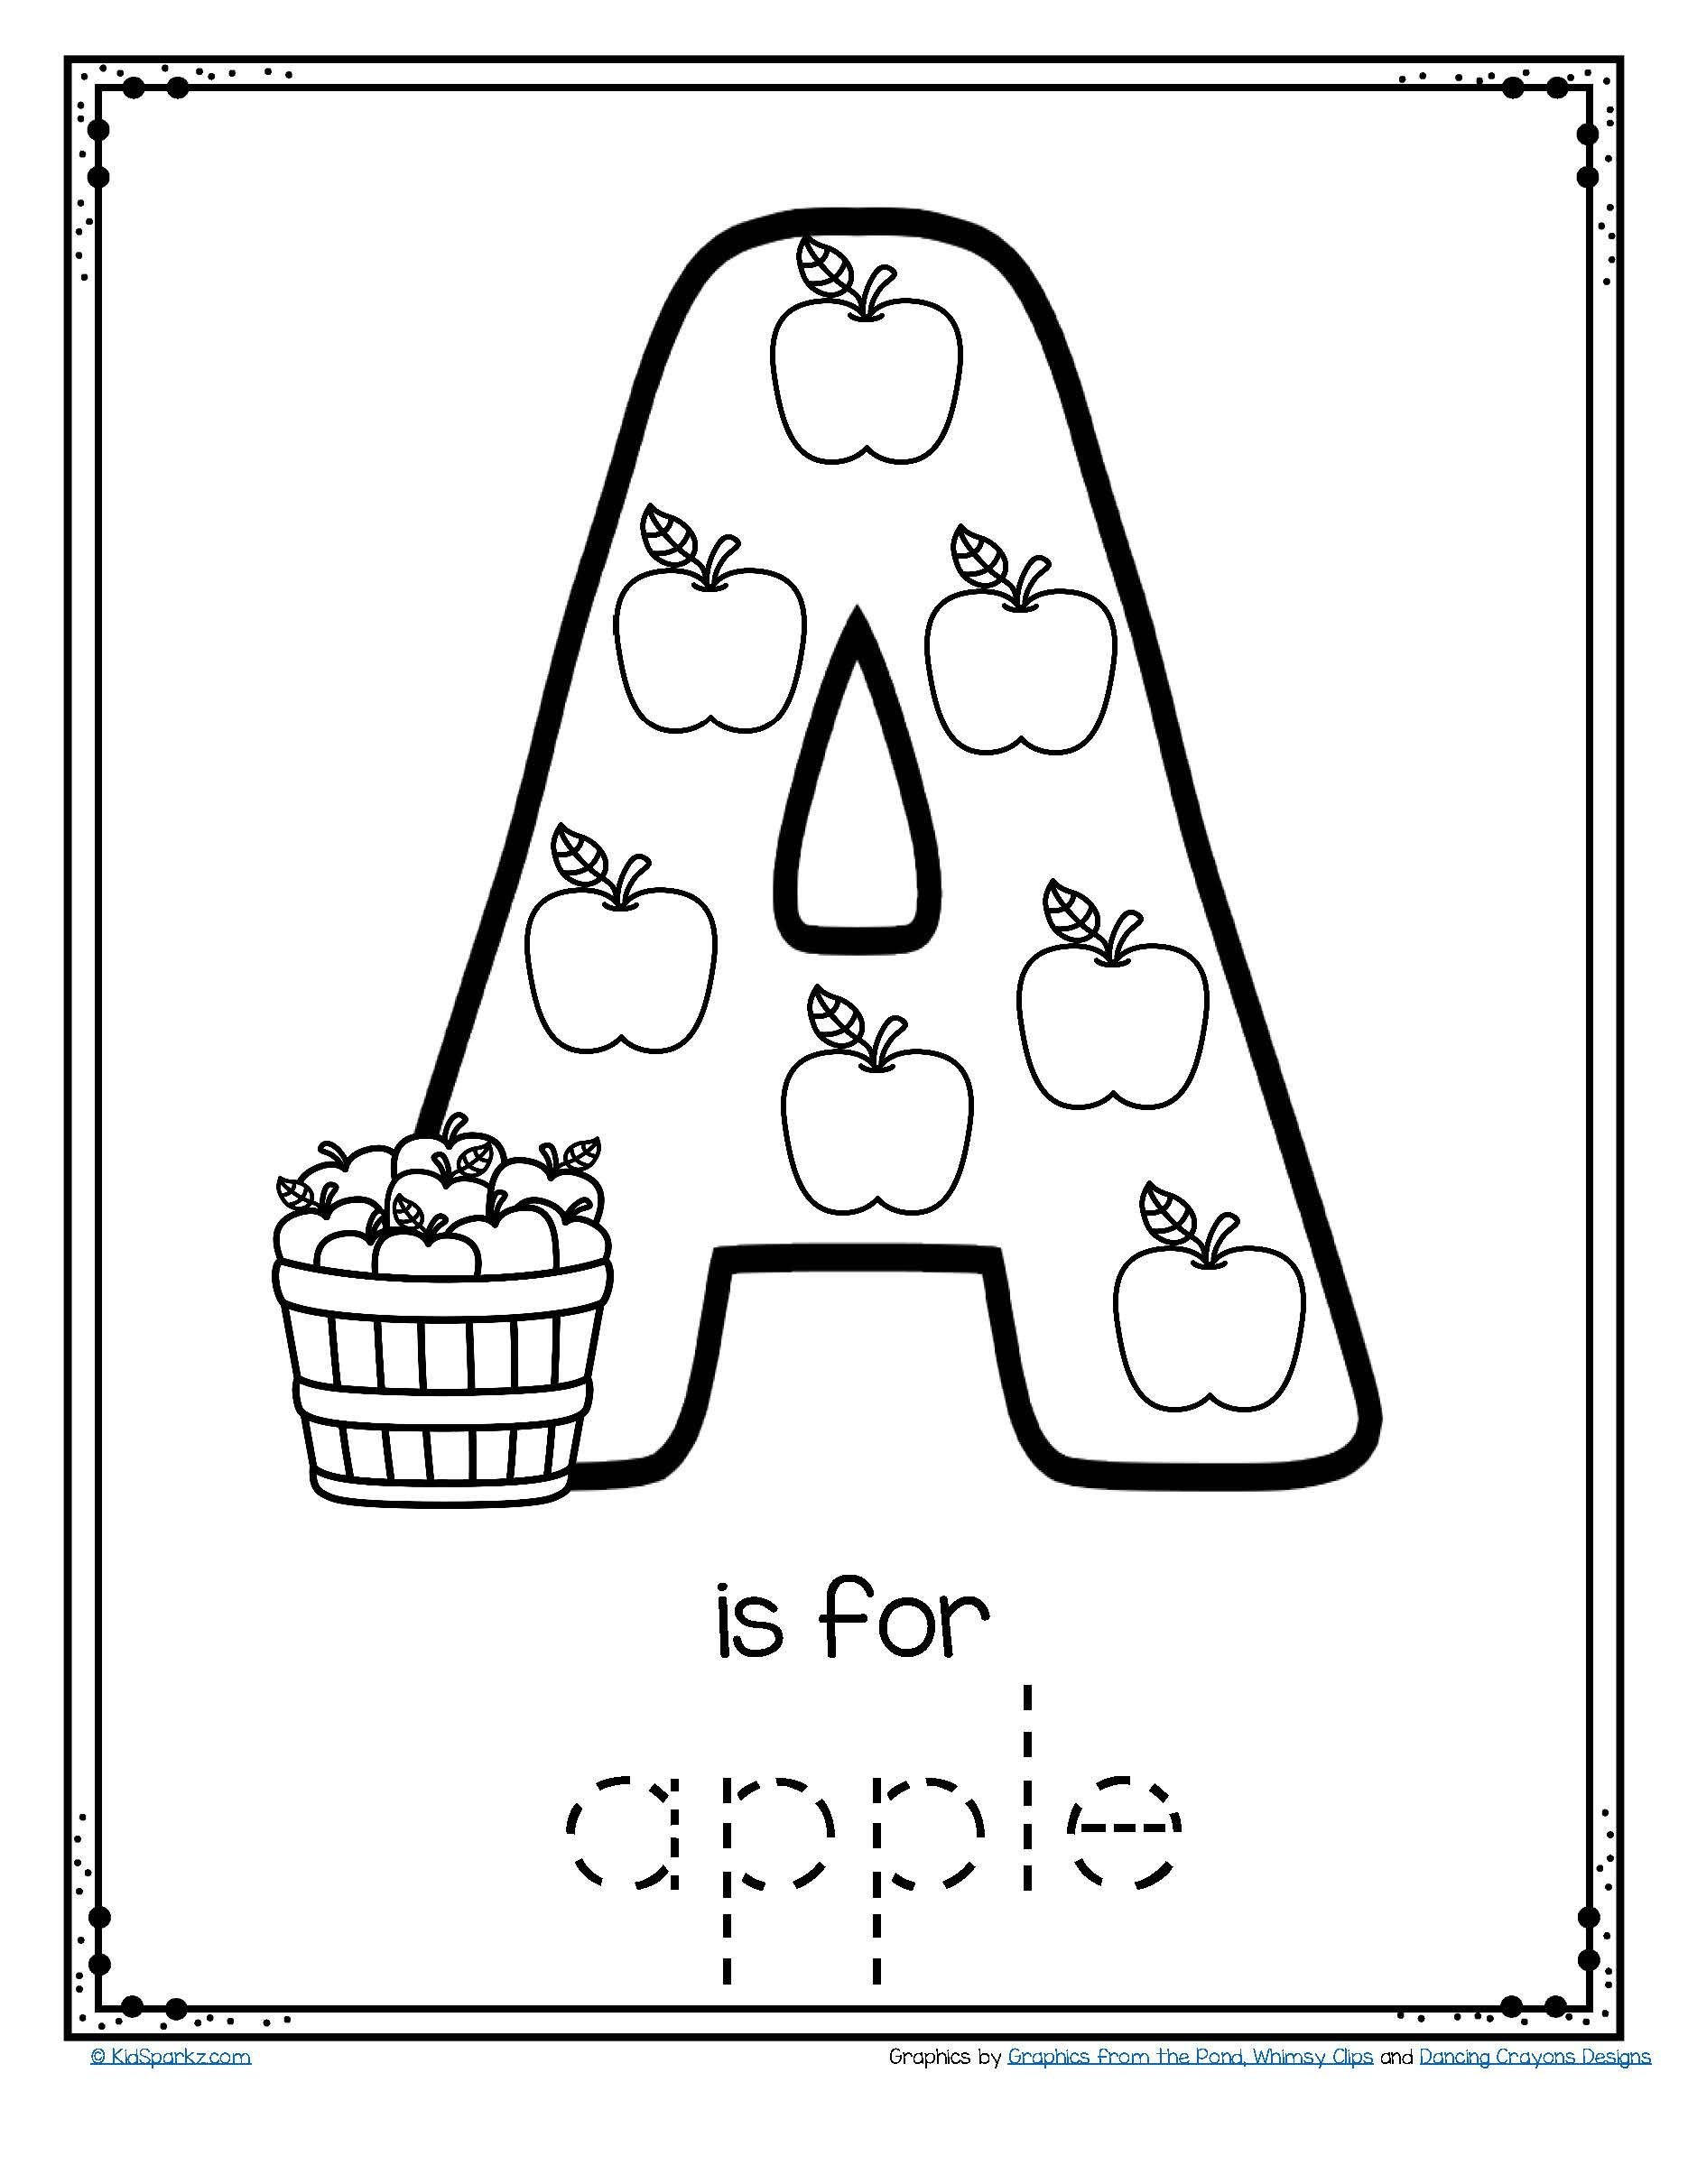 Apple Worksheets Preschool Free A is for Apple Alphabet Trace and Color Printable